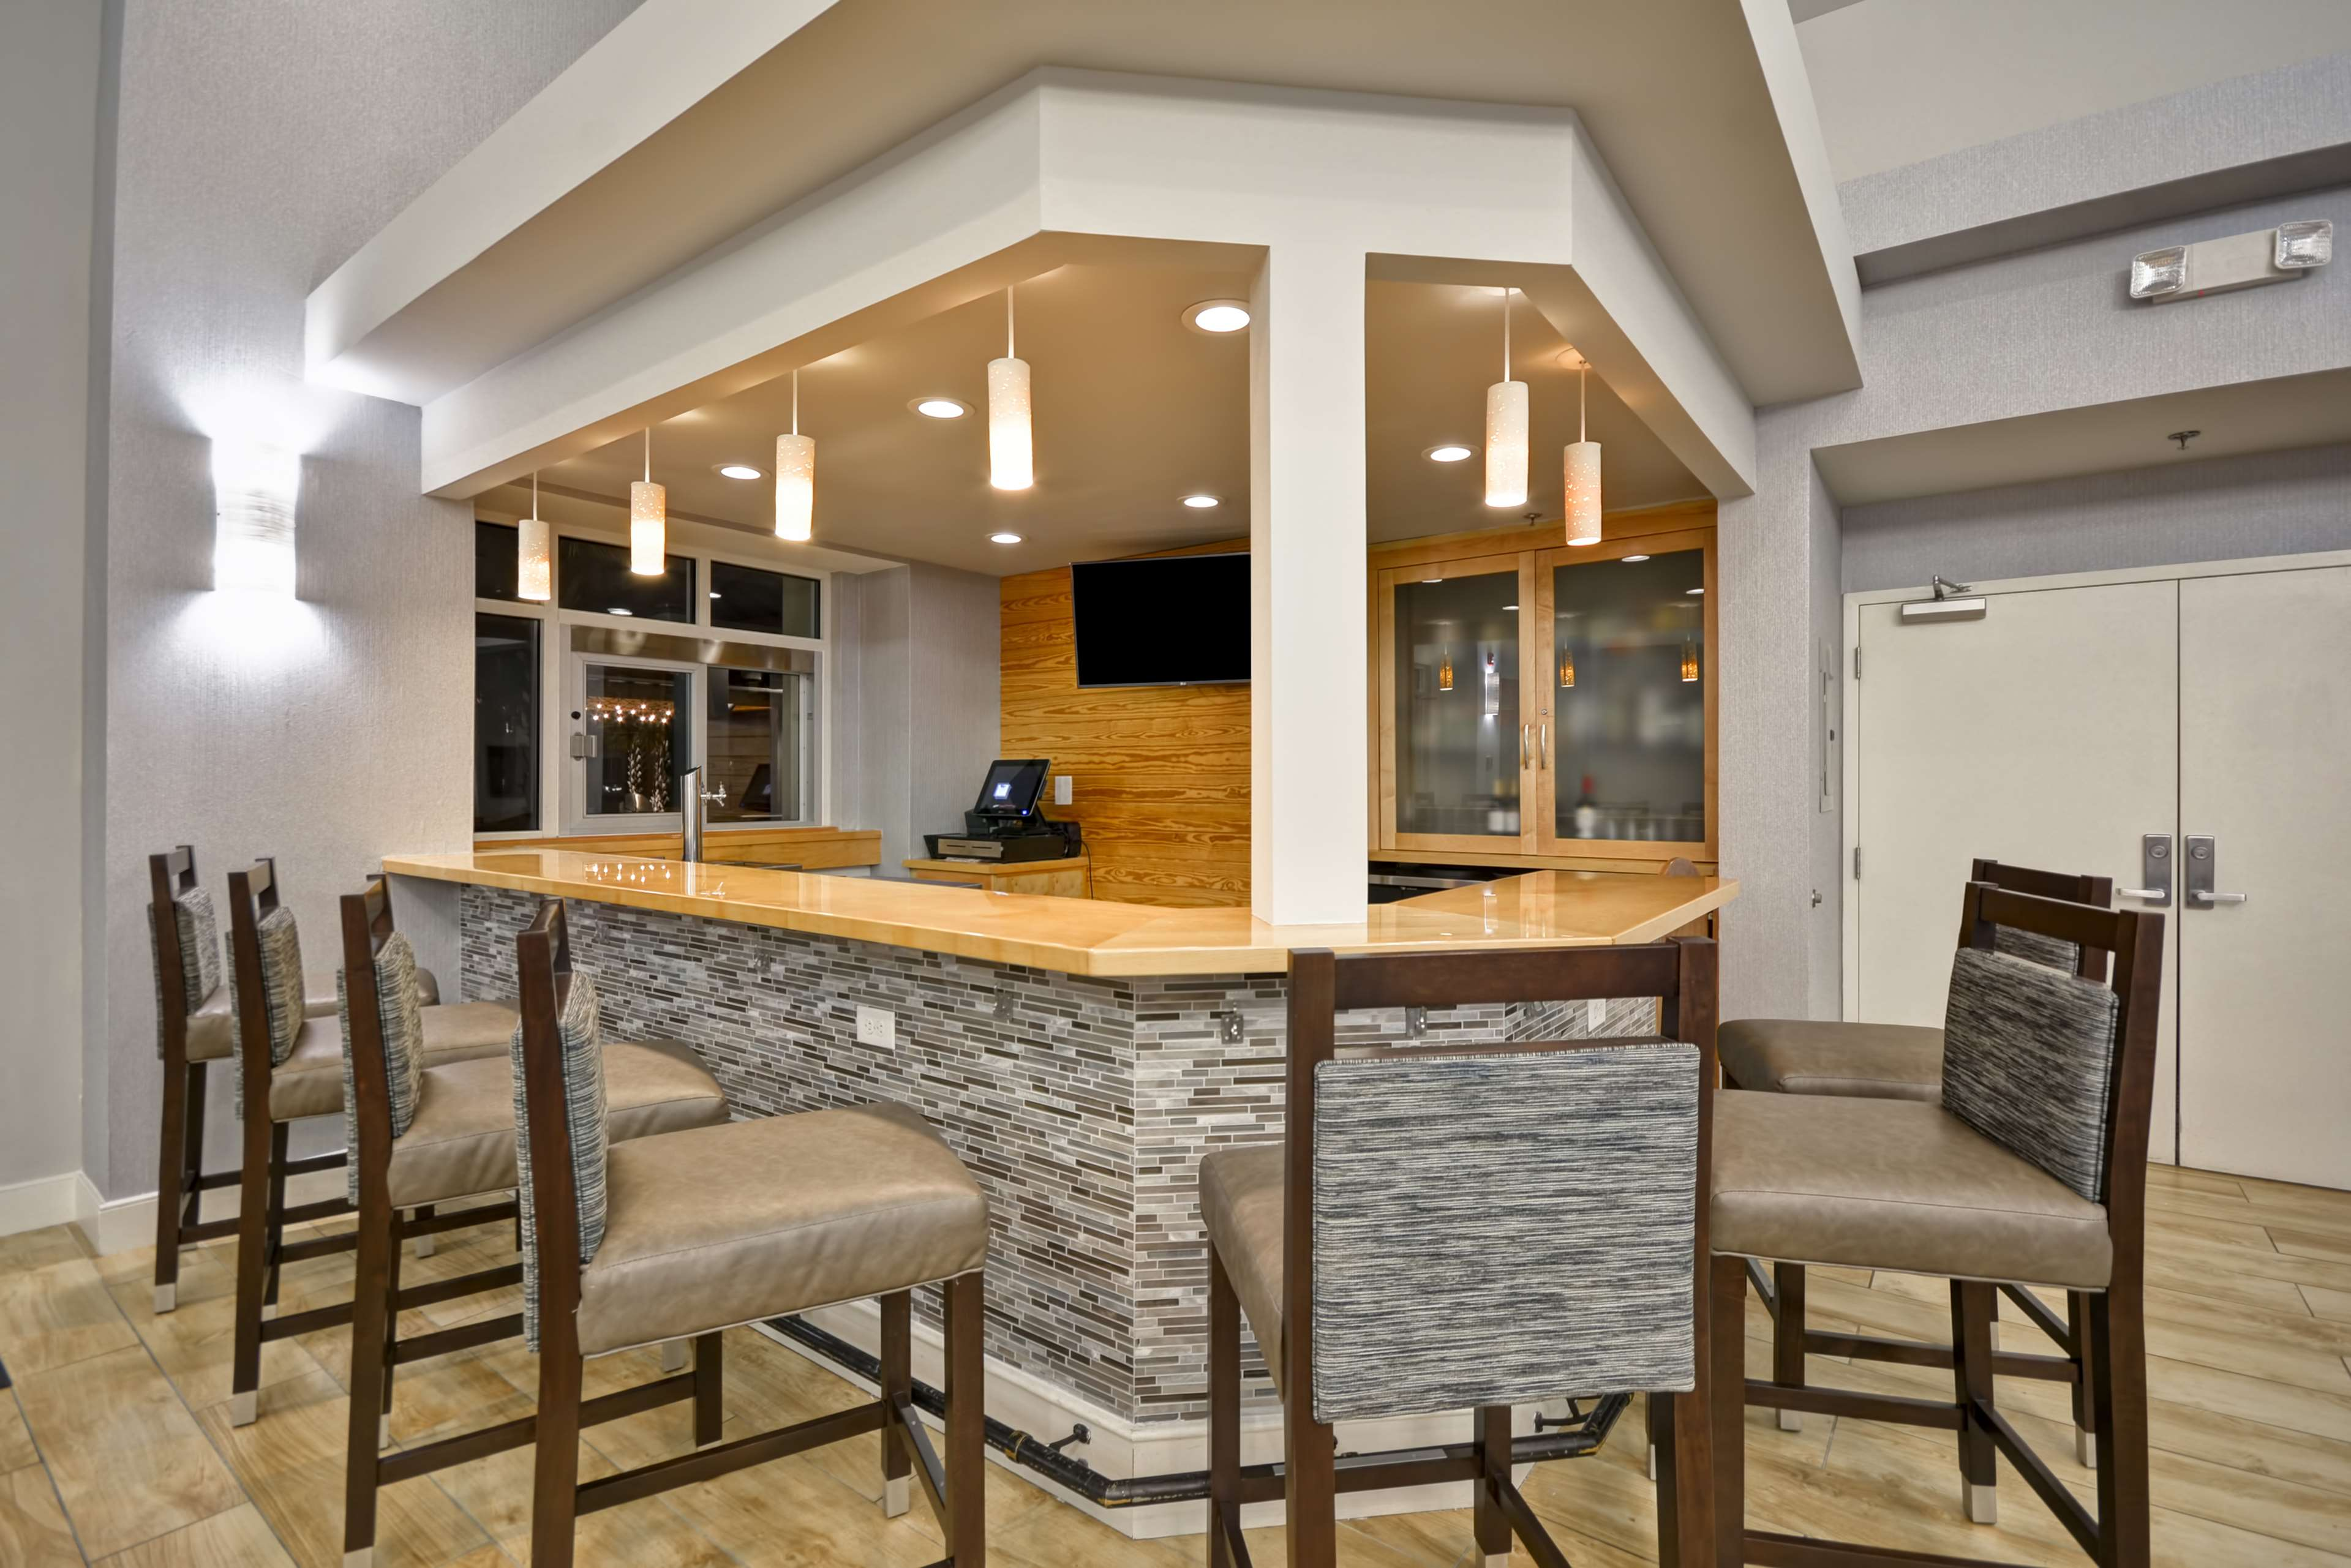 Homewood Suites by Hilton Wilmington/Mayfaire, NC image 35